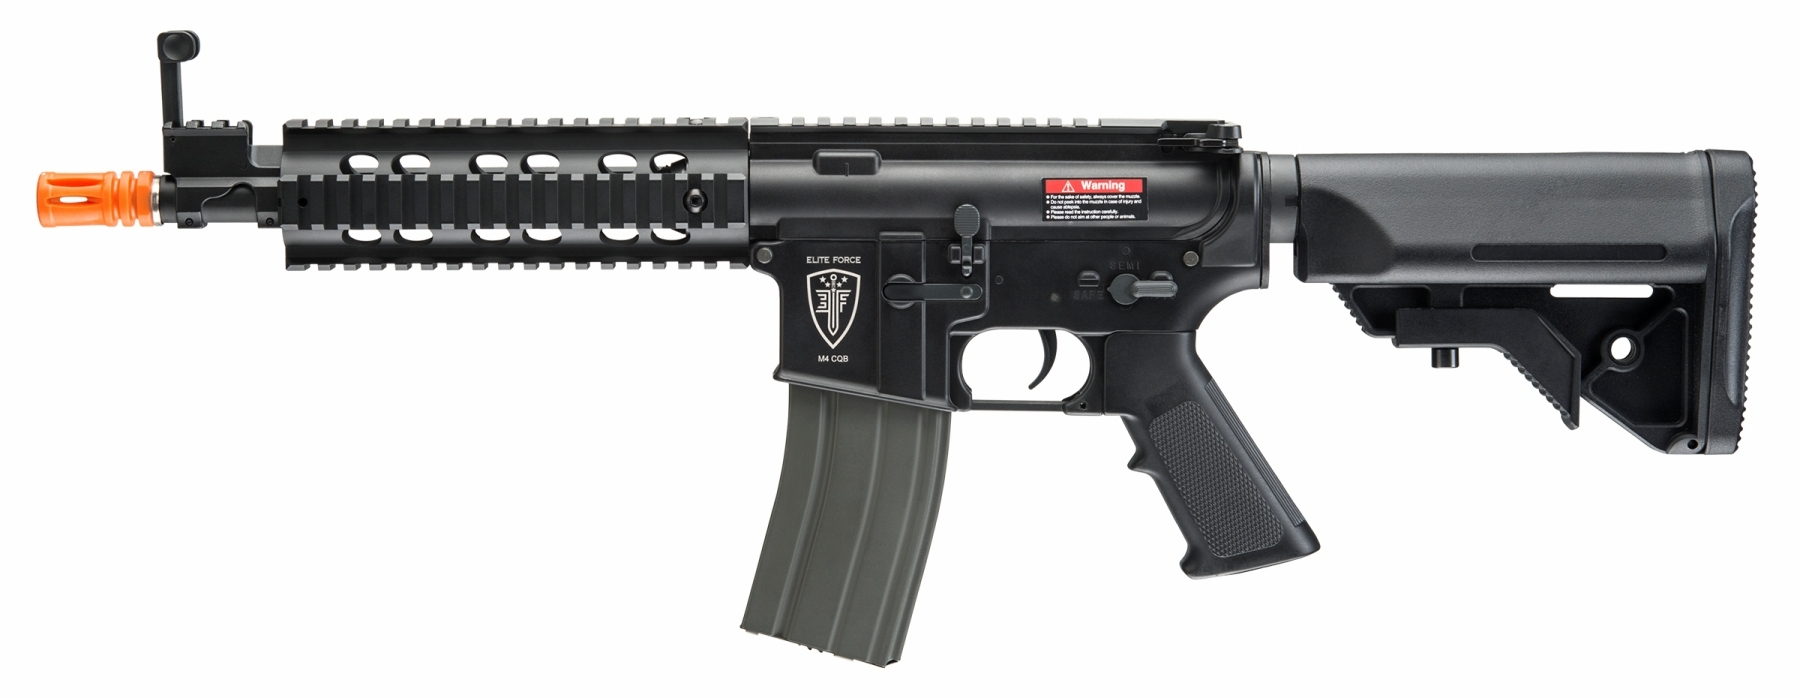 Elite Force M4 CQB AEG, Black